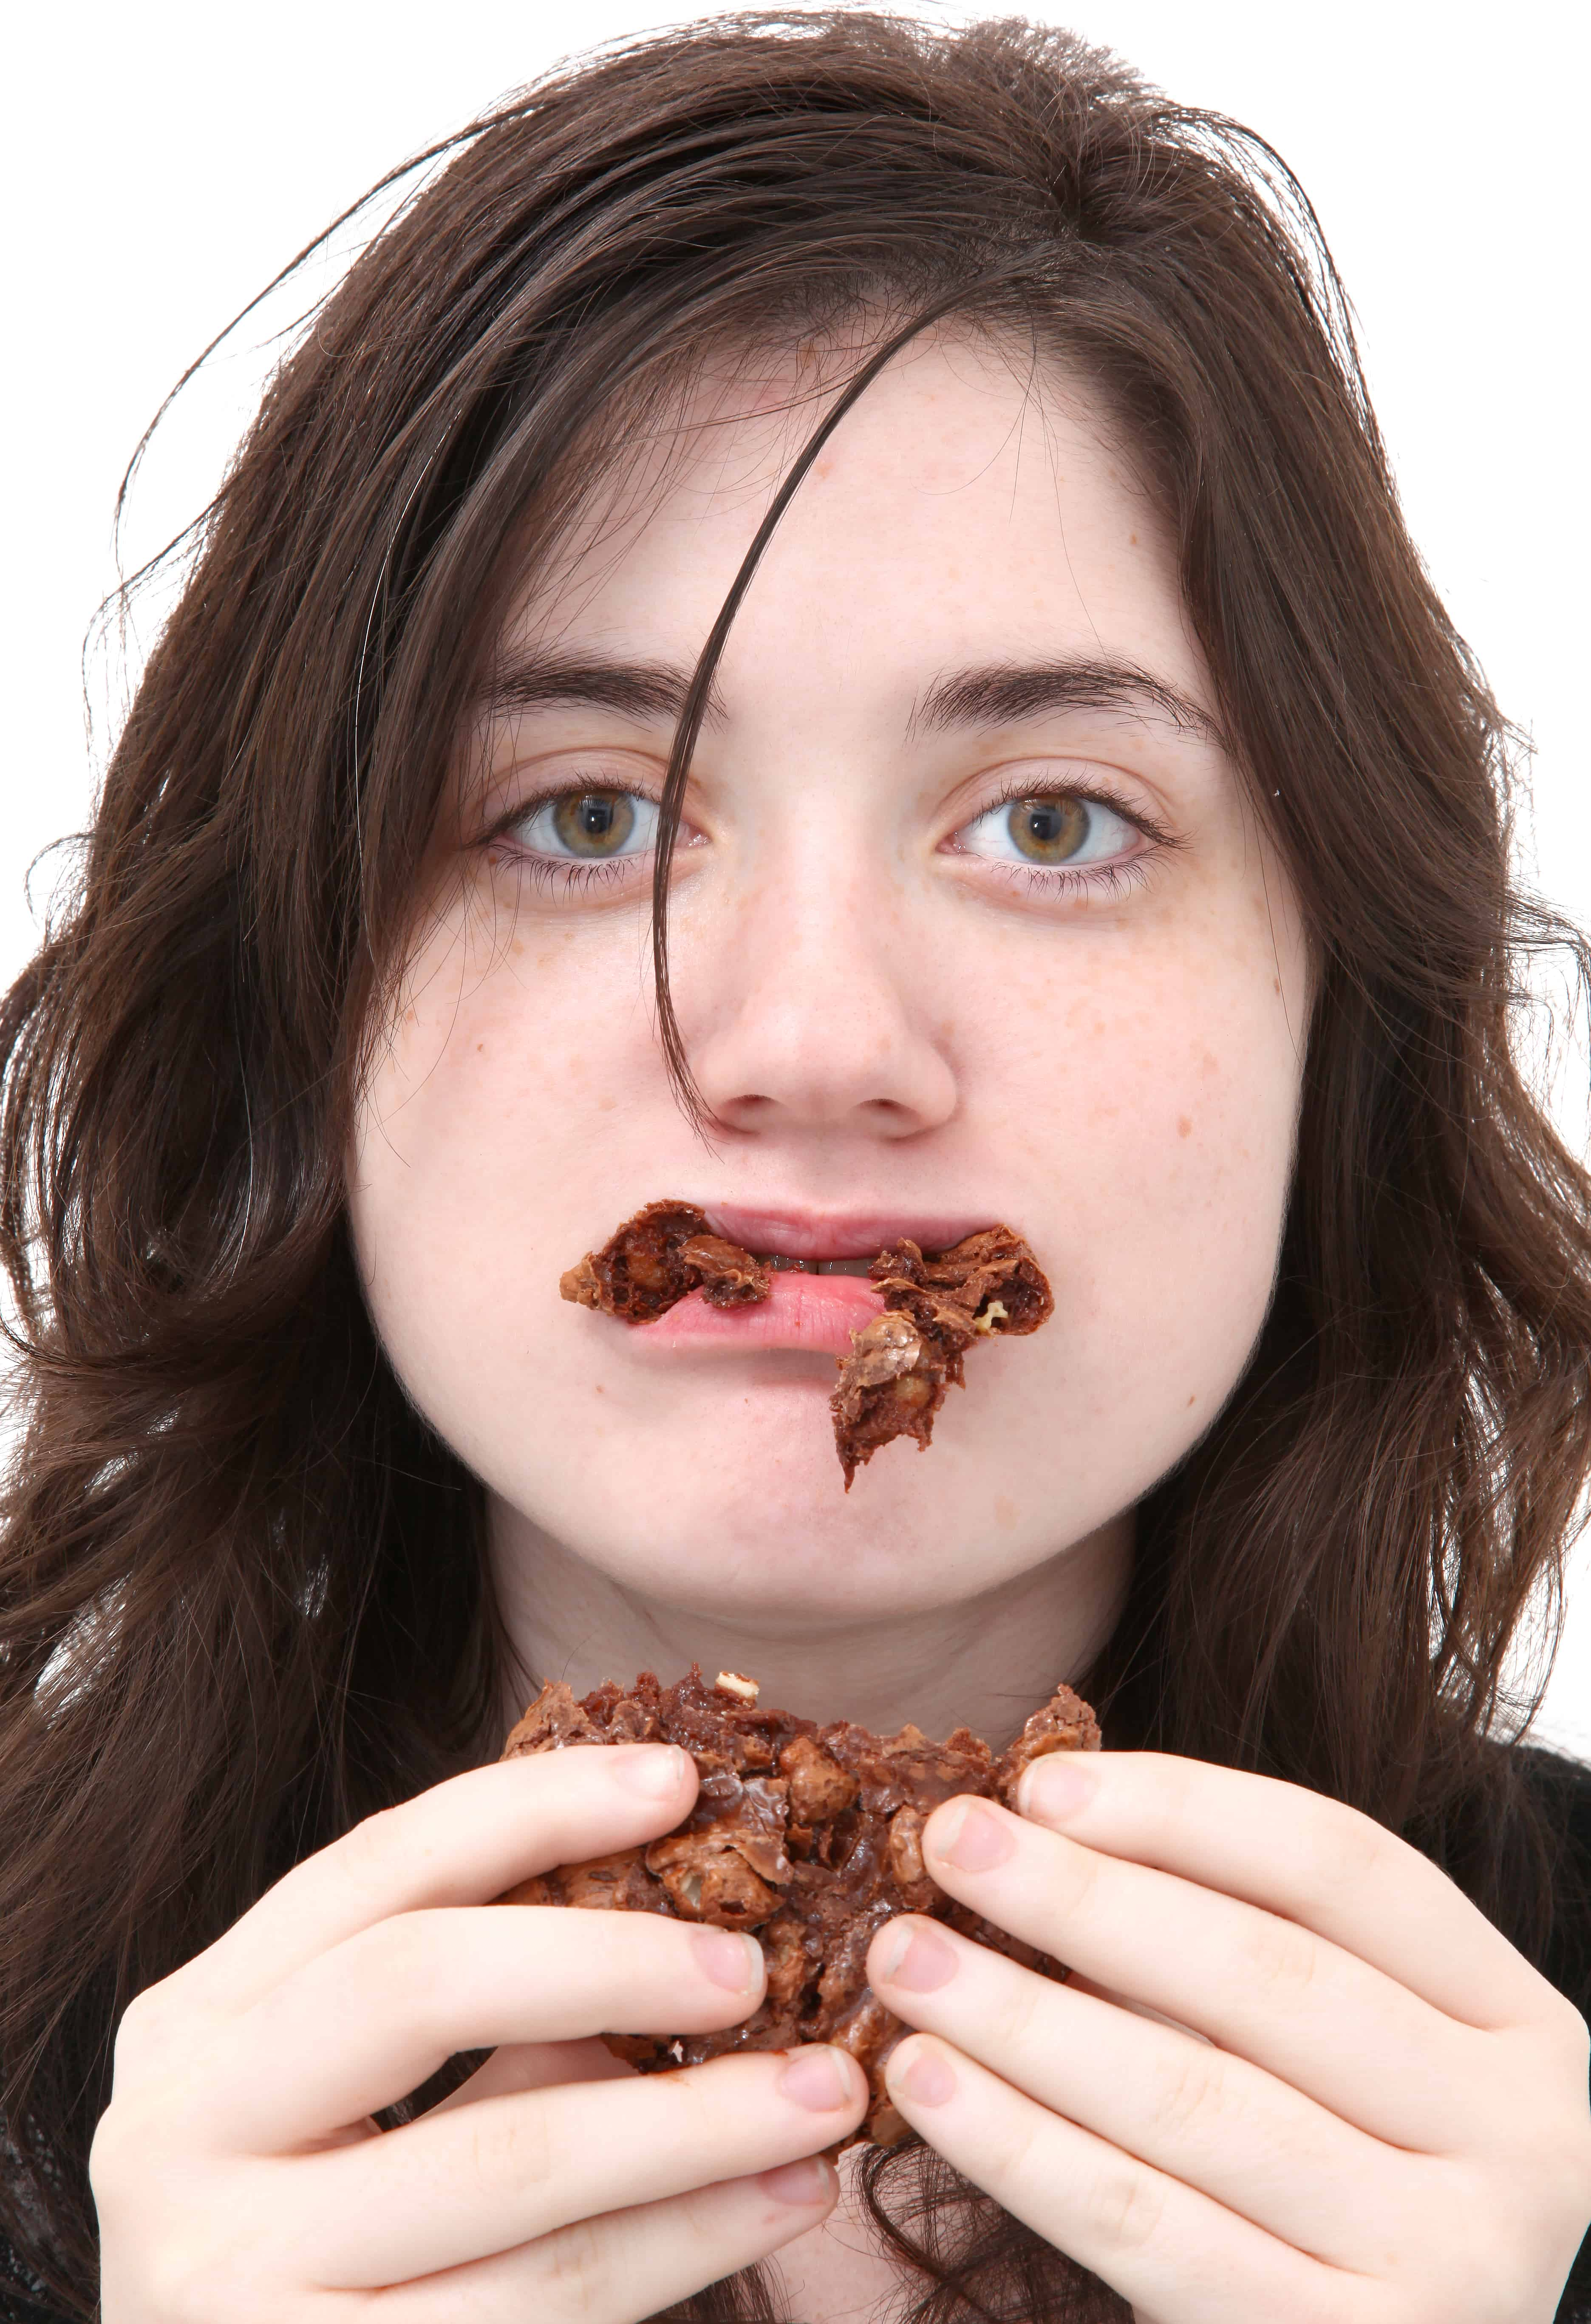 3 Causes Of Emotional Eating And How To Overcome Them